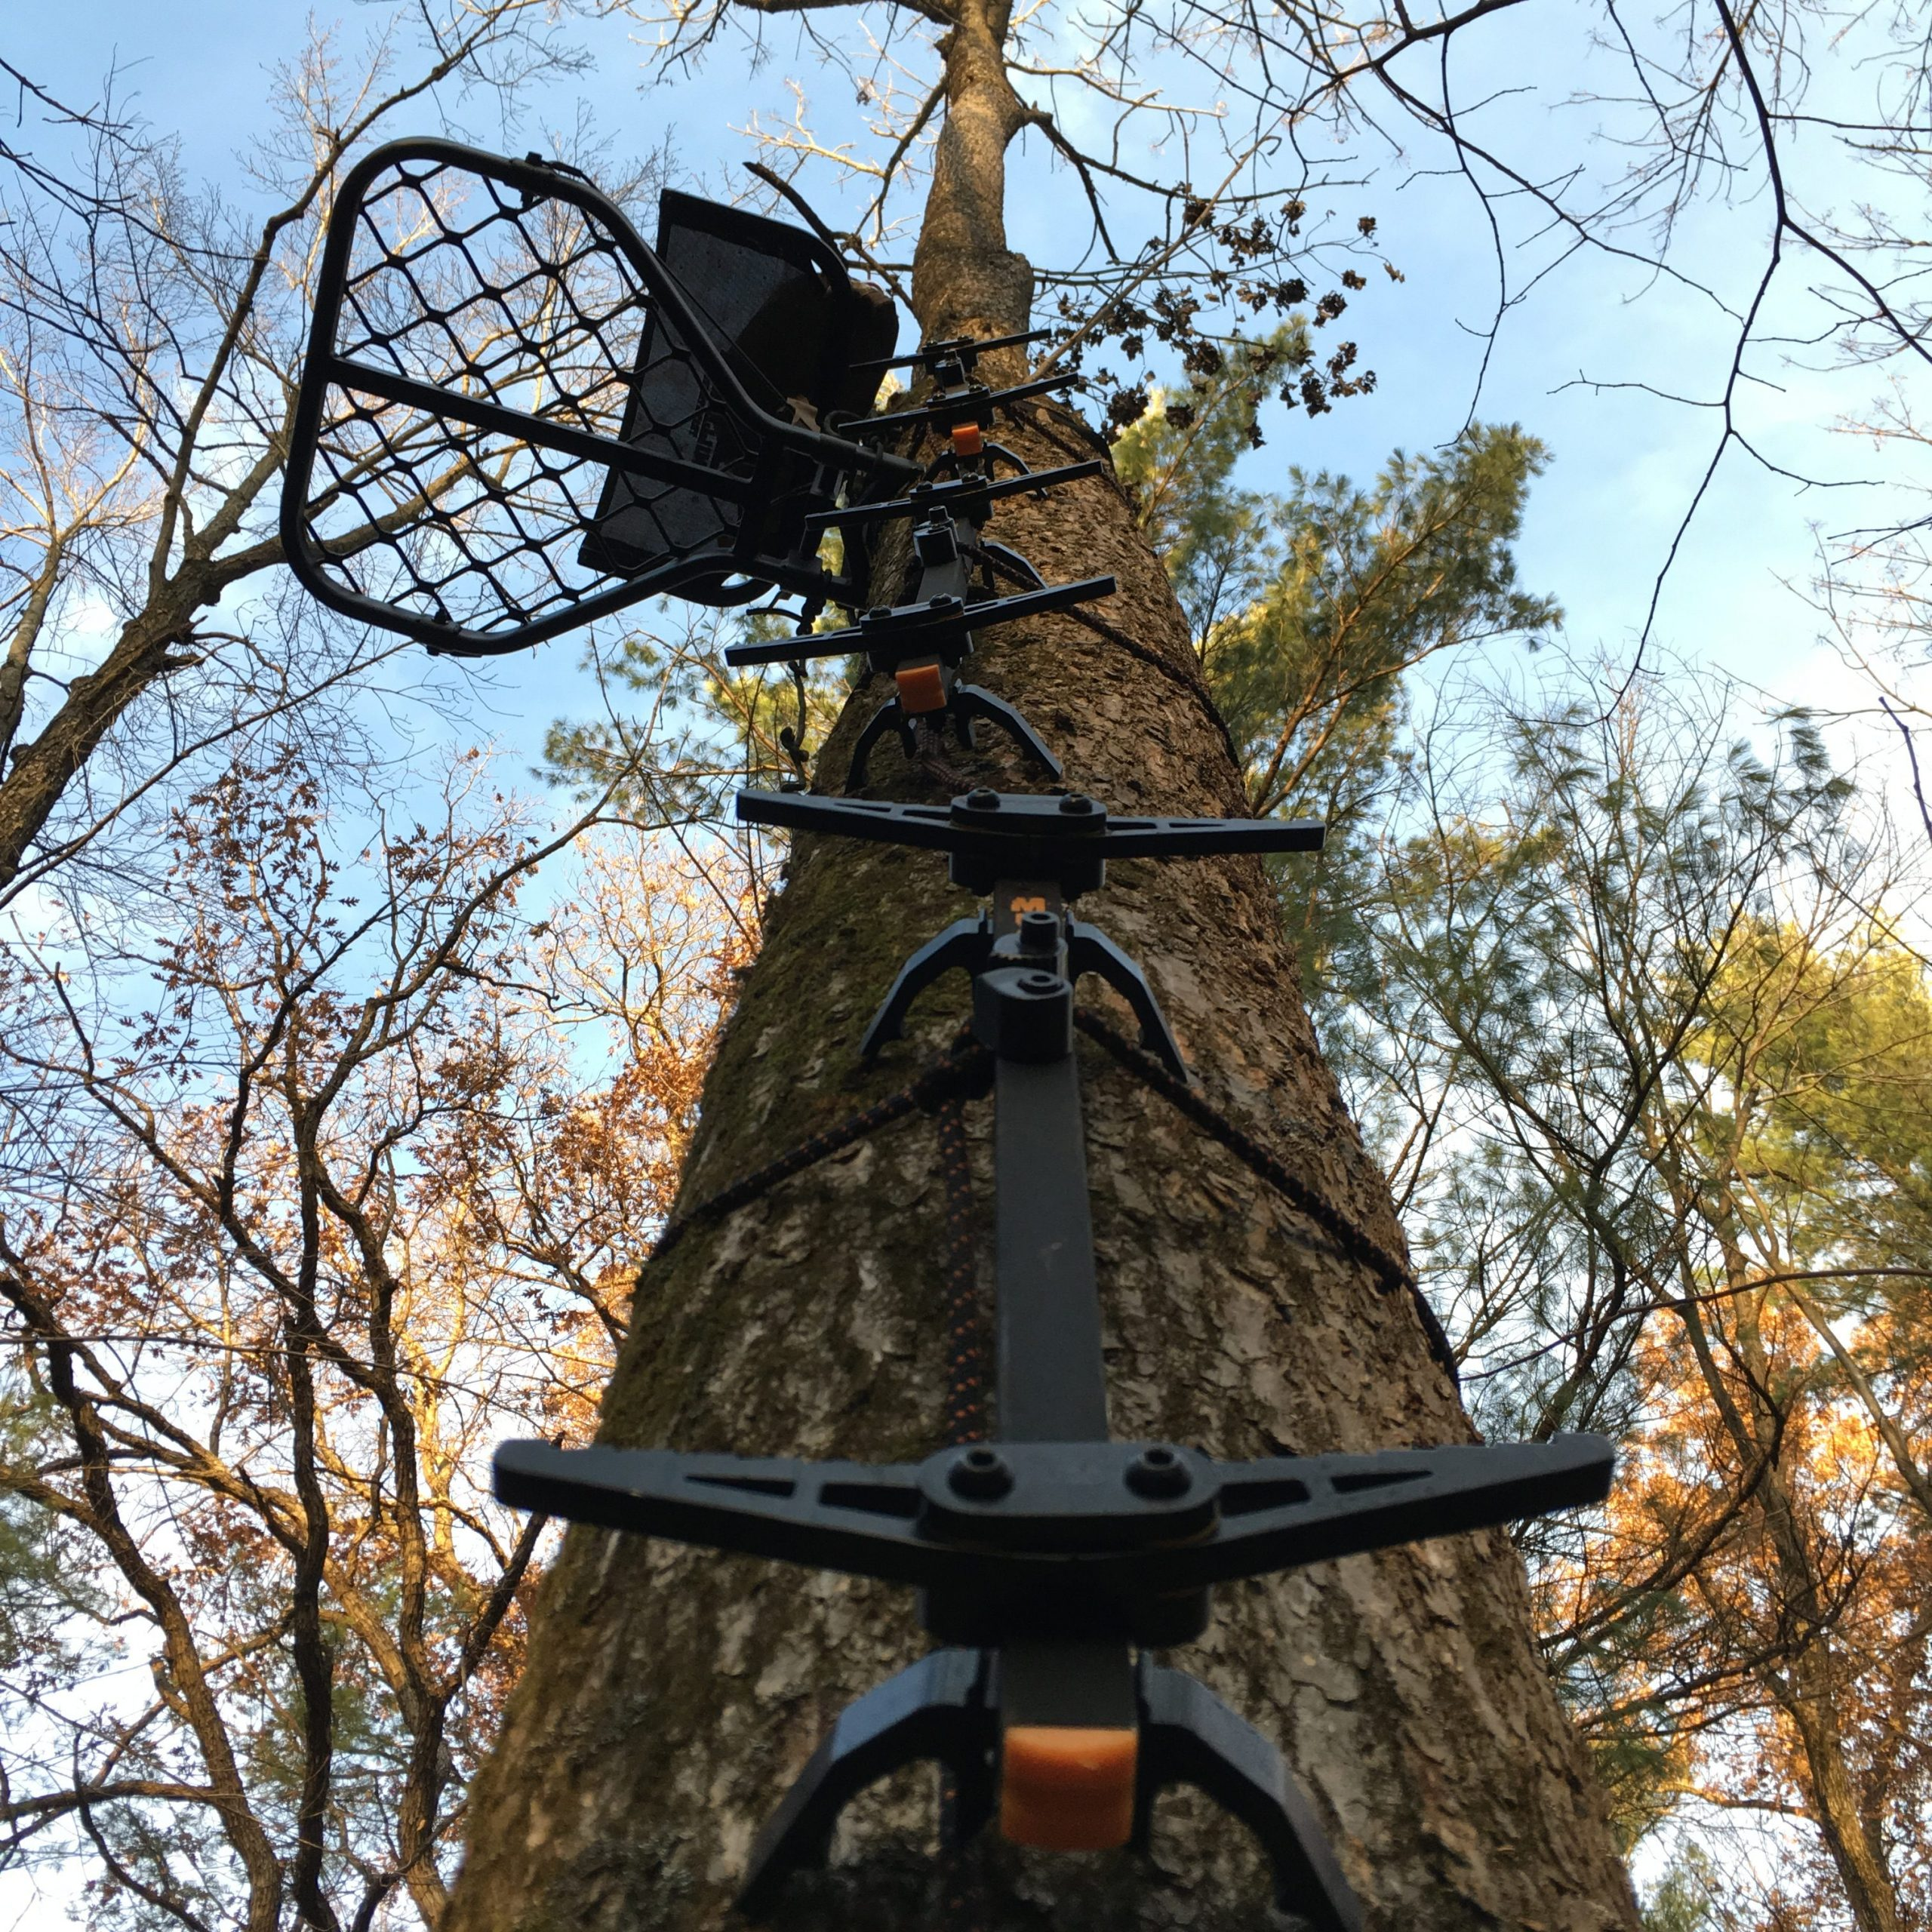 5 Must-Have Items for Tree Stand Safety